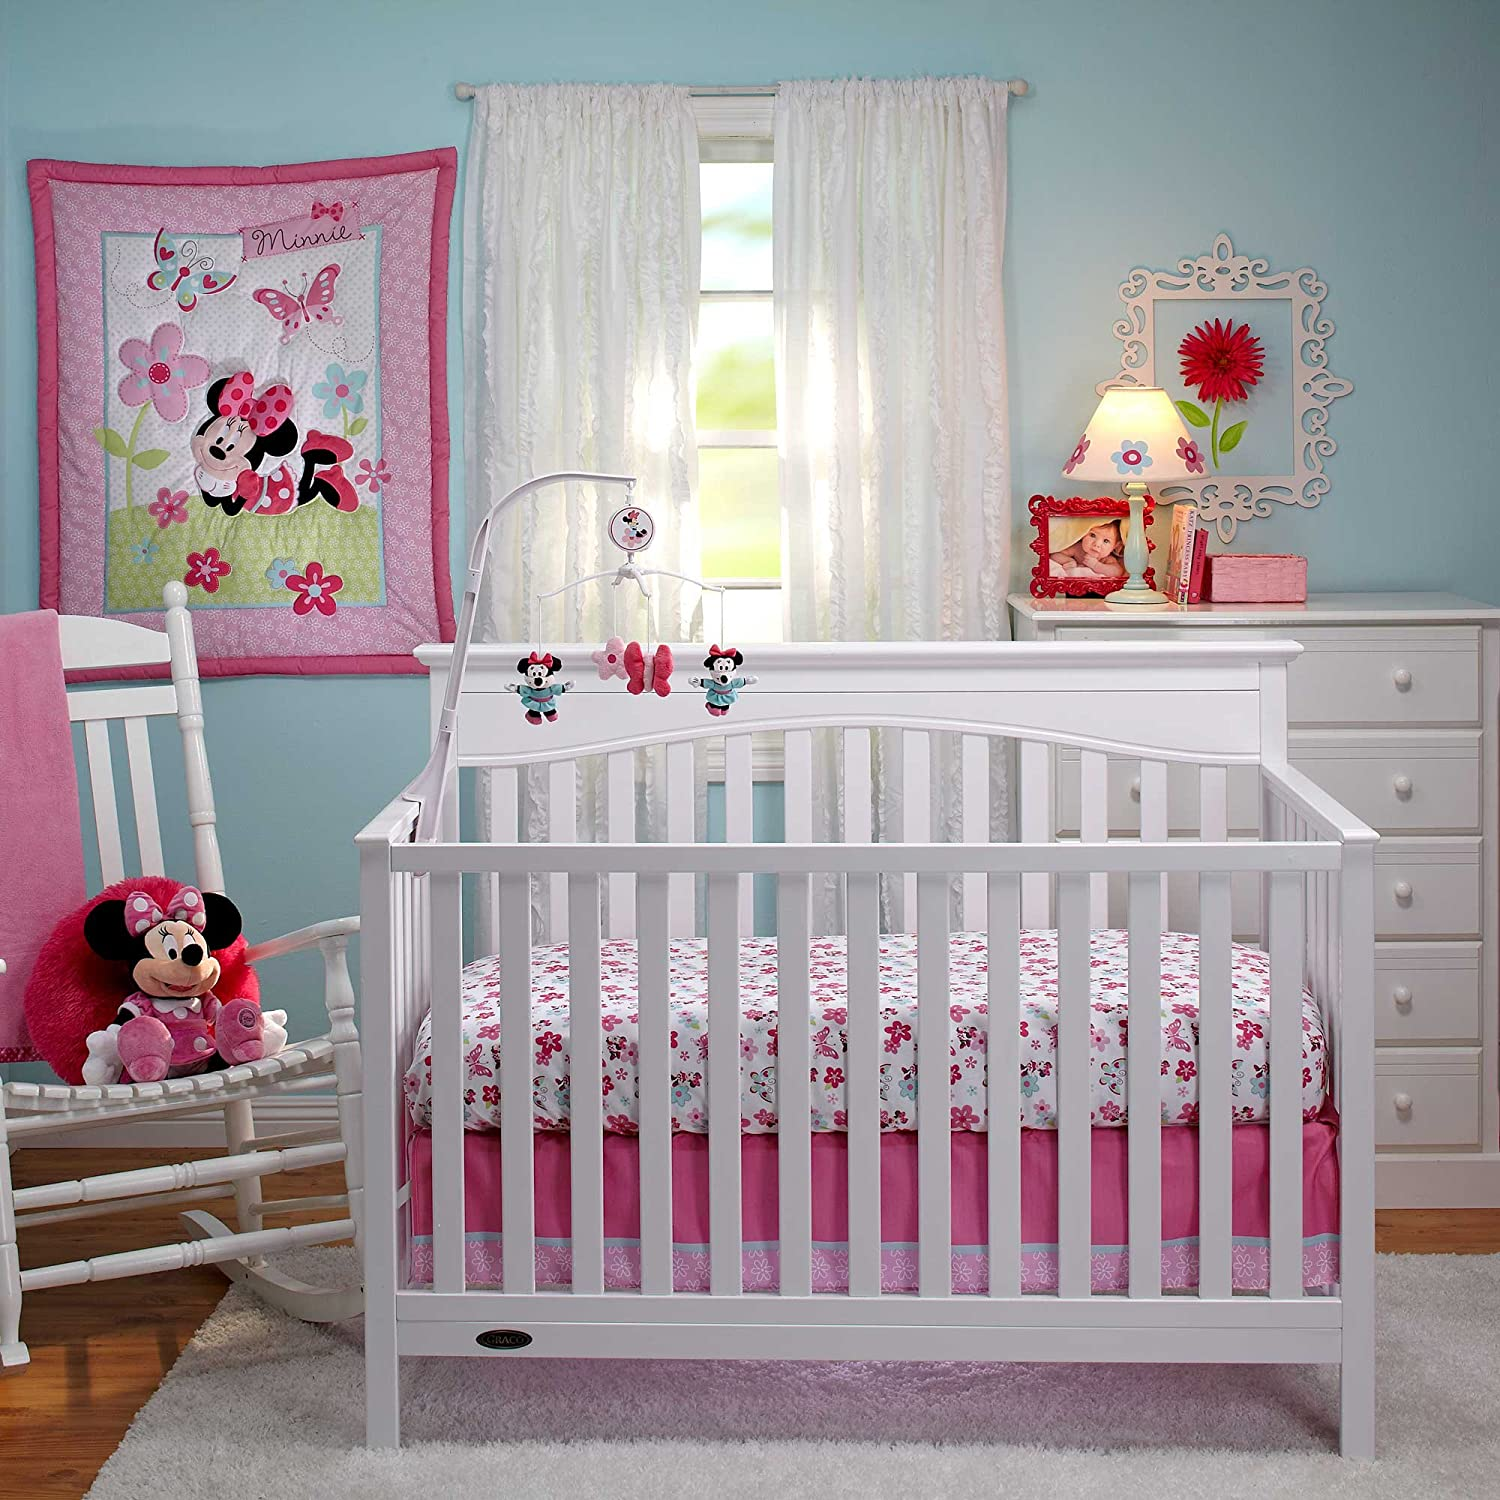 Disney Minnie S Garden Crib Bedding Collection Baby